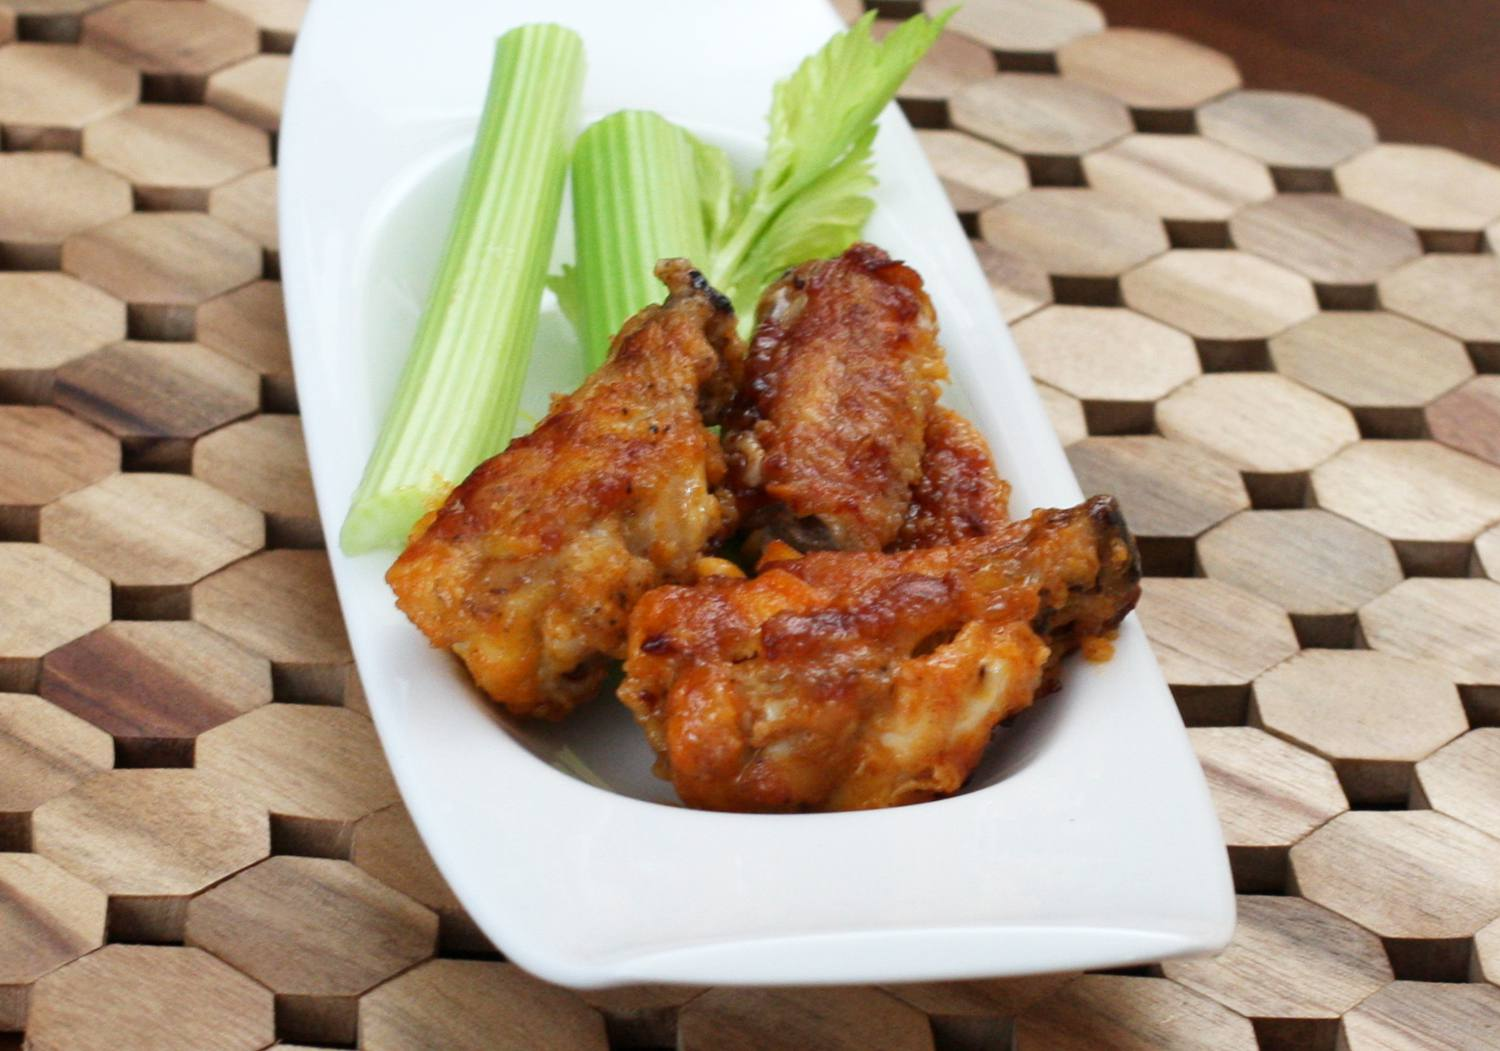 Spicy baked chicken wings in an oval-shaped white bowl with celery sticks